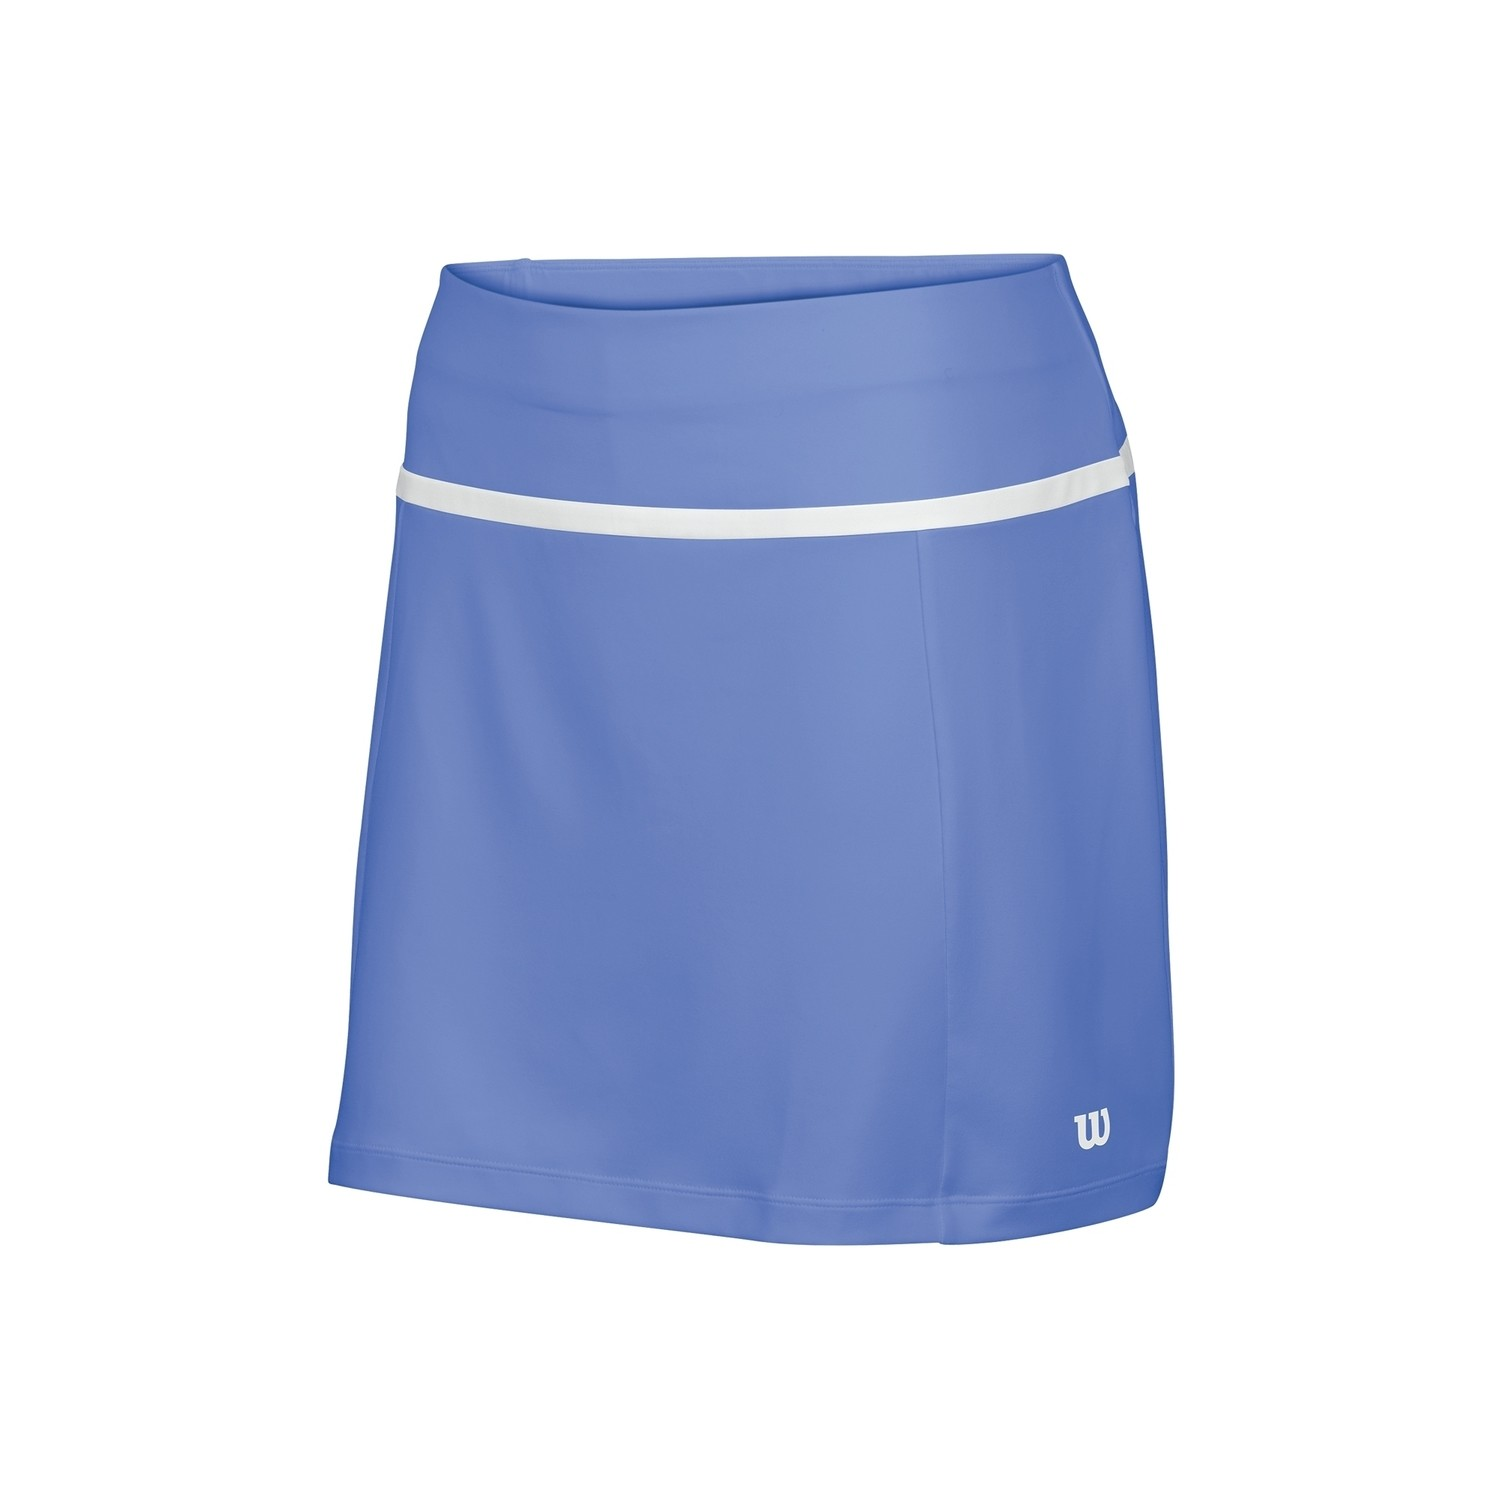 "Wilson Fenom Elite 14.5"" Skirt - Peri Blue"